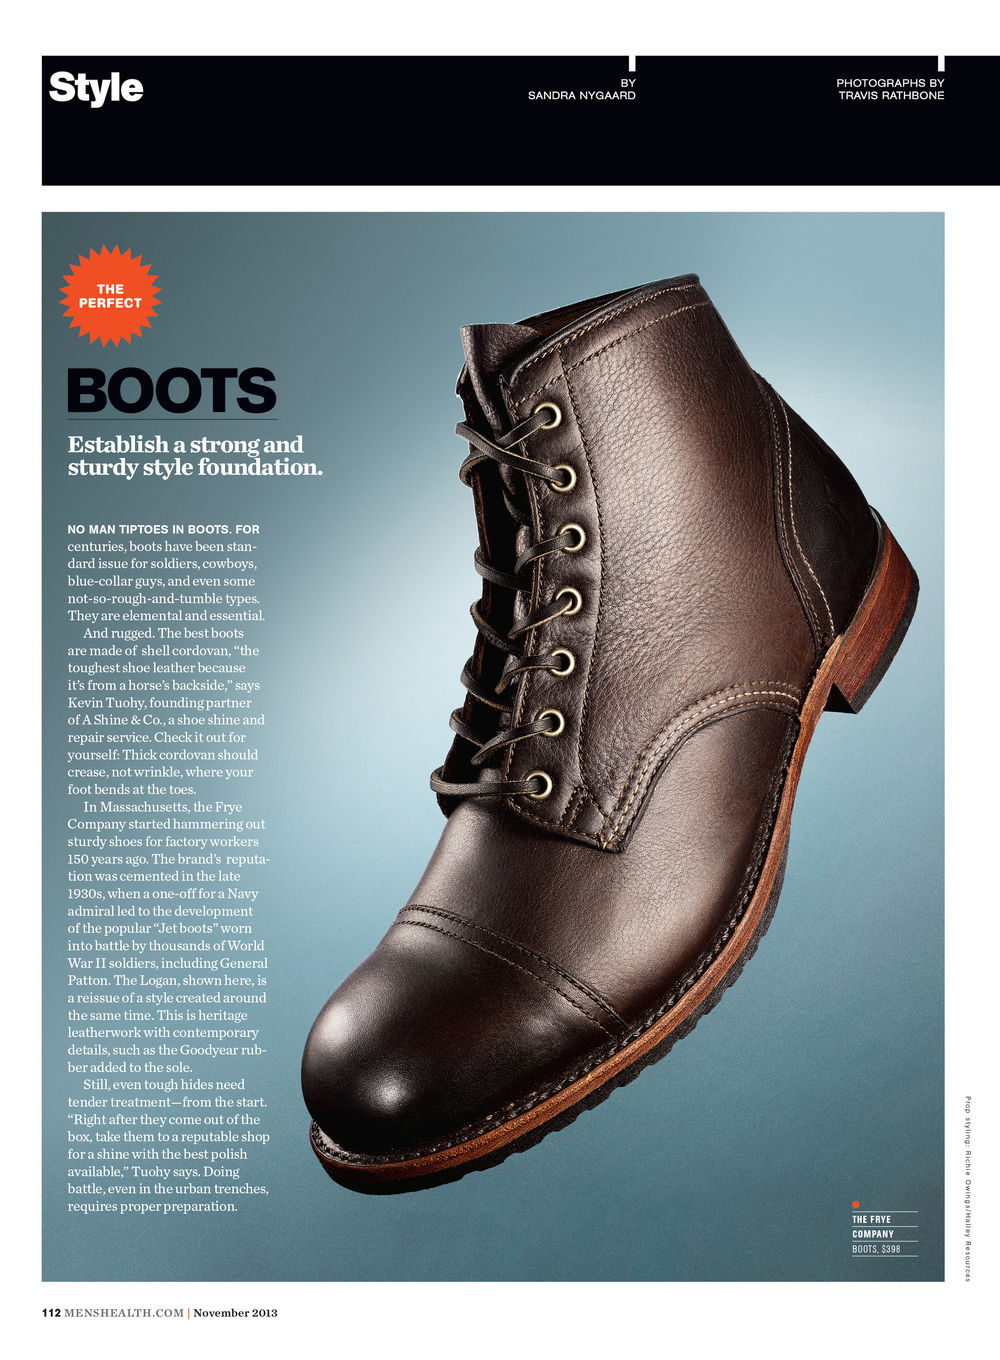 The Best: Boots